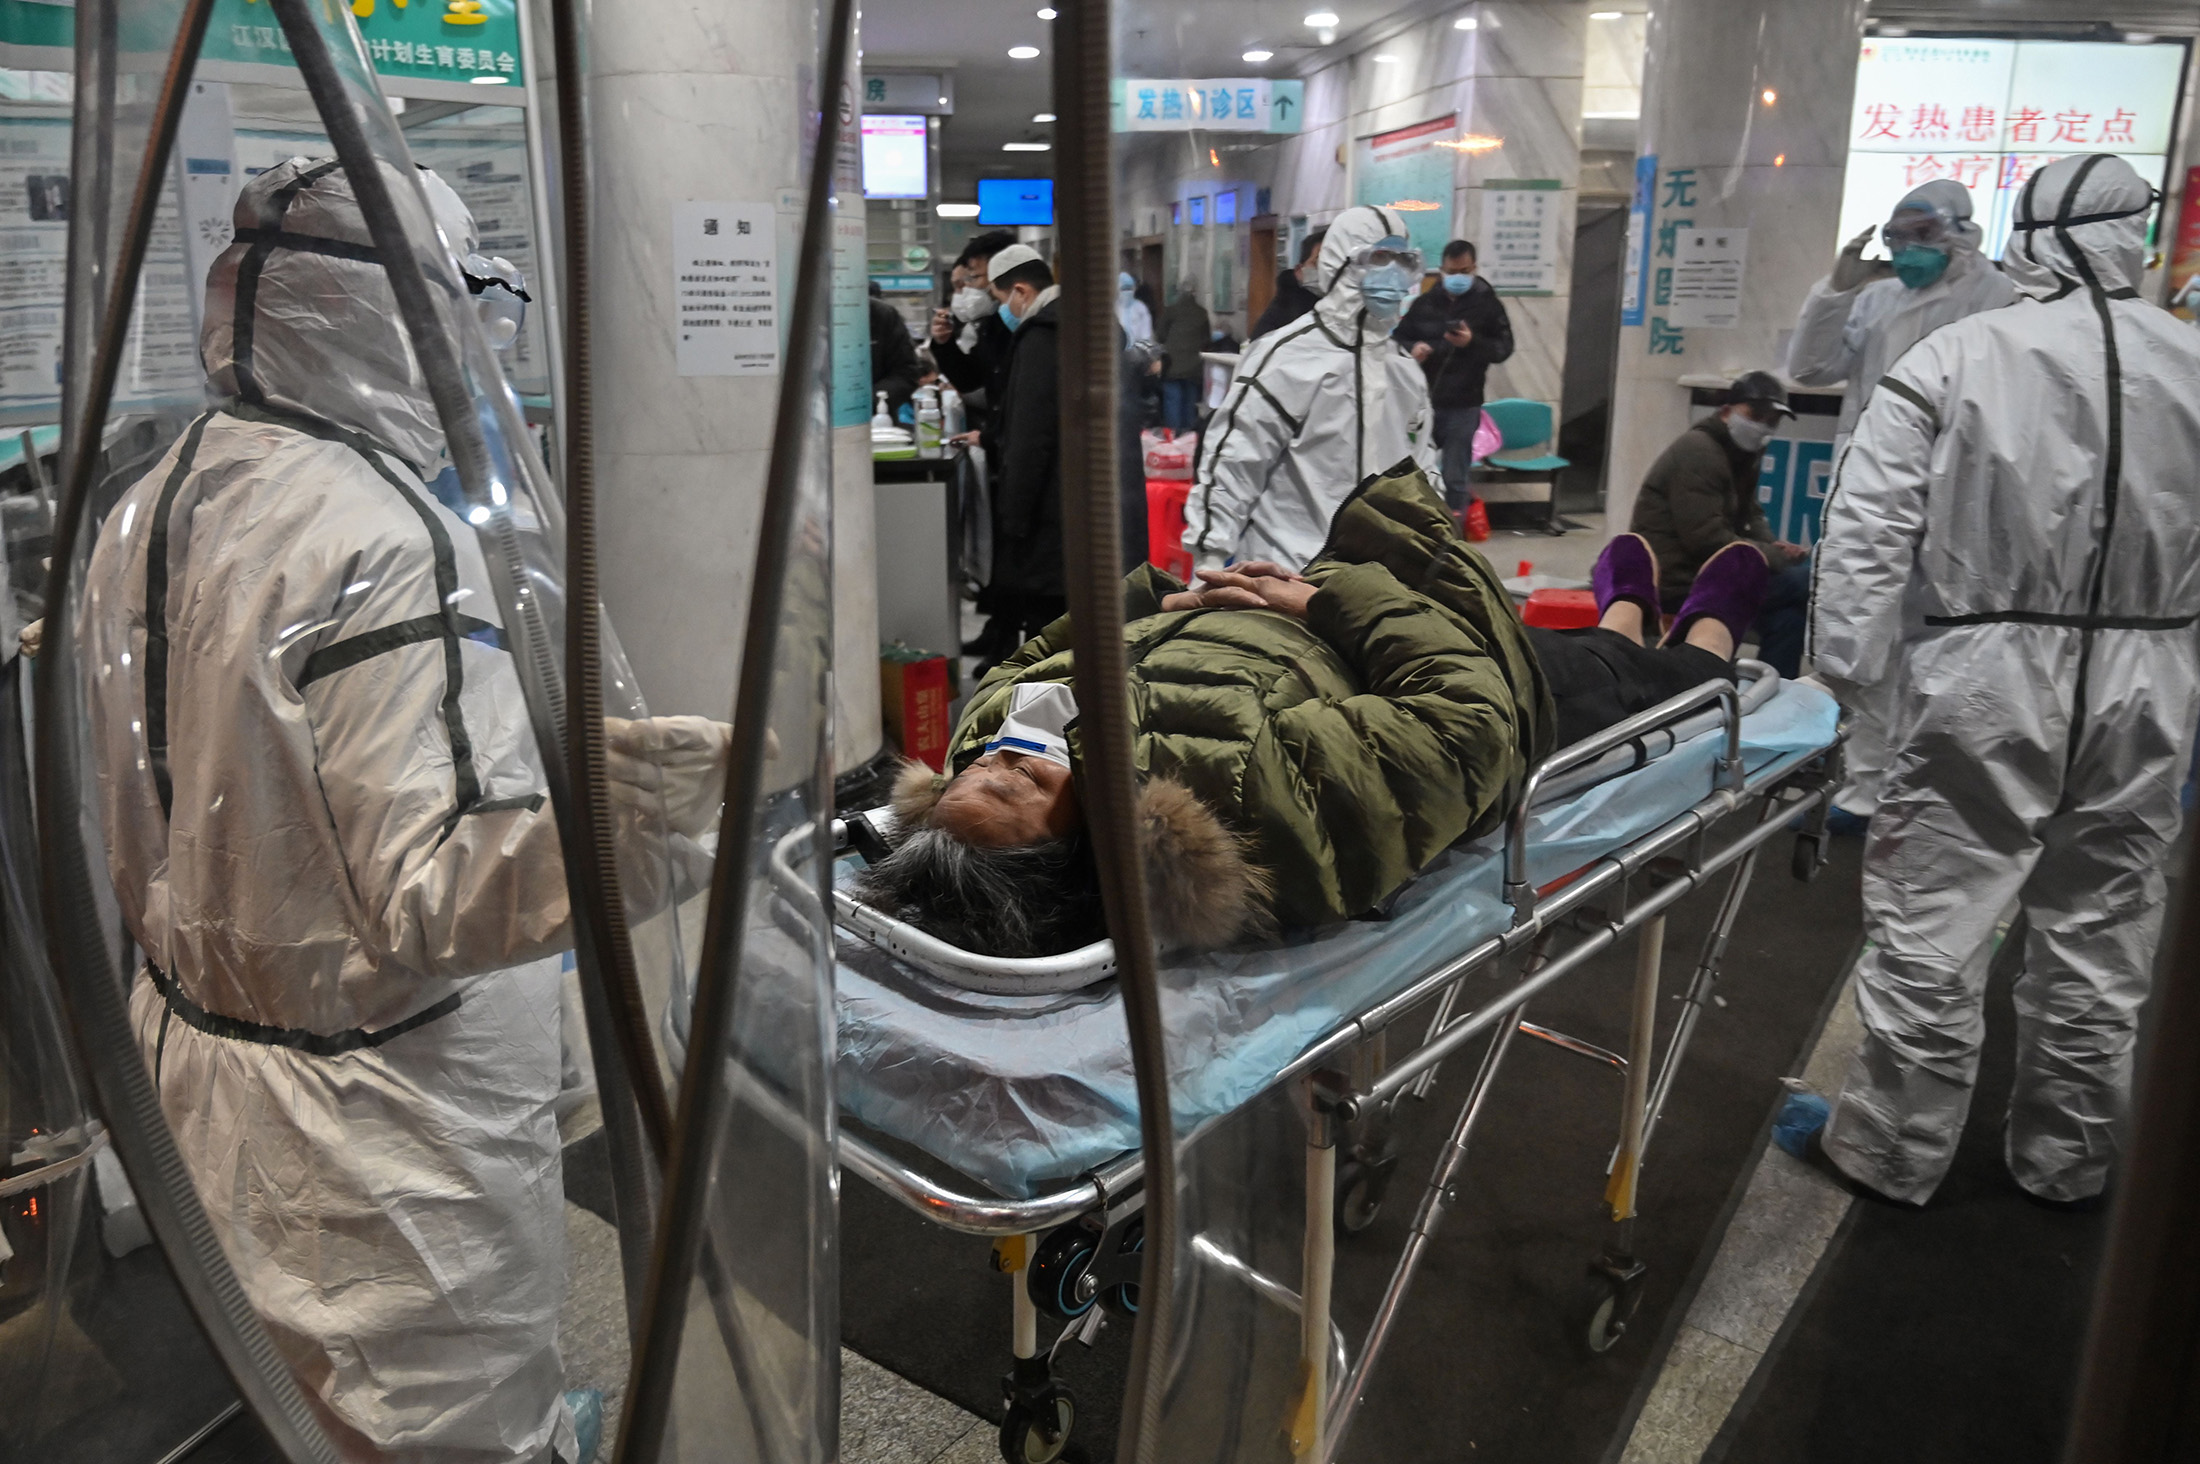 Medical staff members wearing protective clothing arrive with a patient at the Wuhan Red Cross Hospital in Wuhan on Jan. 25.